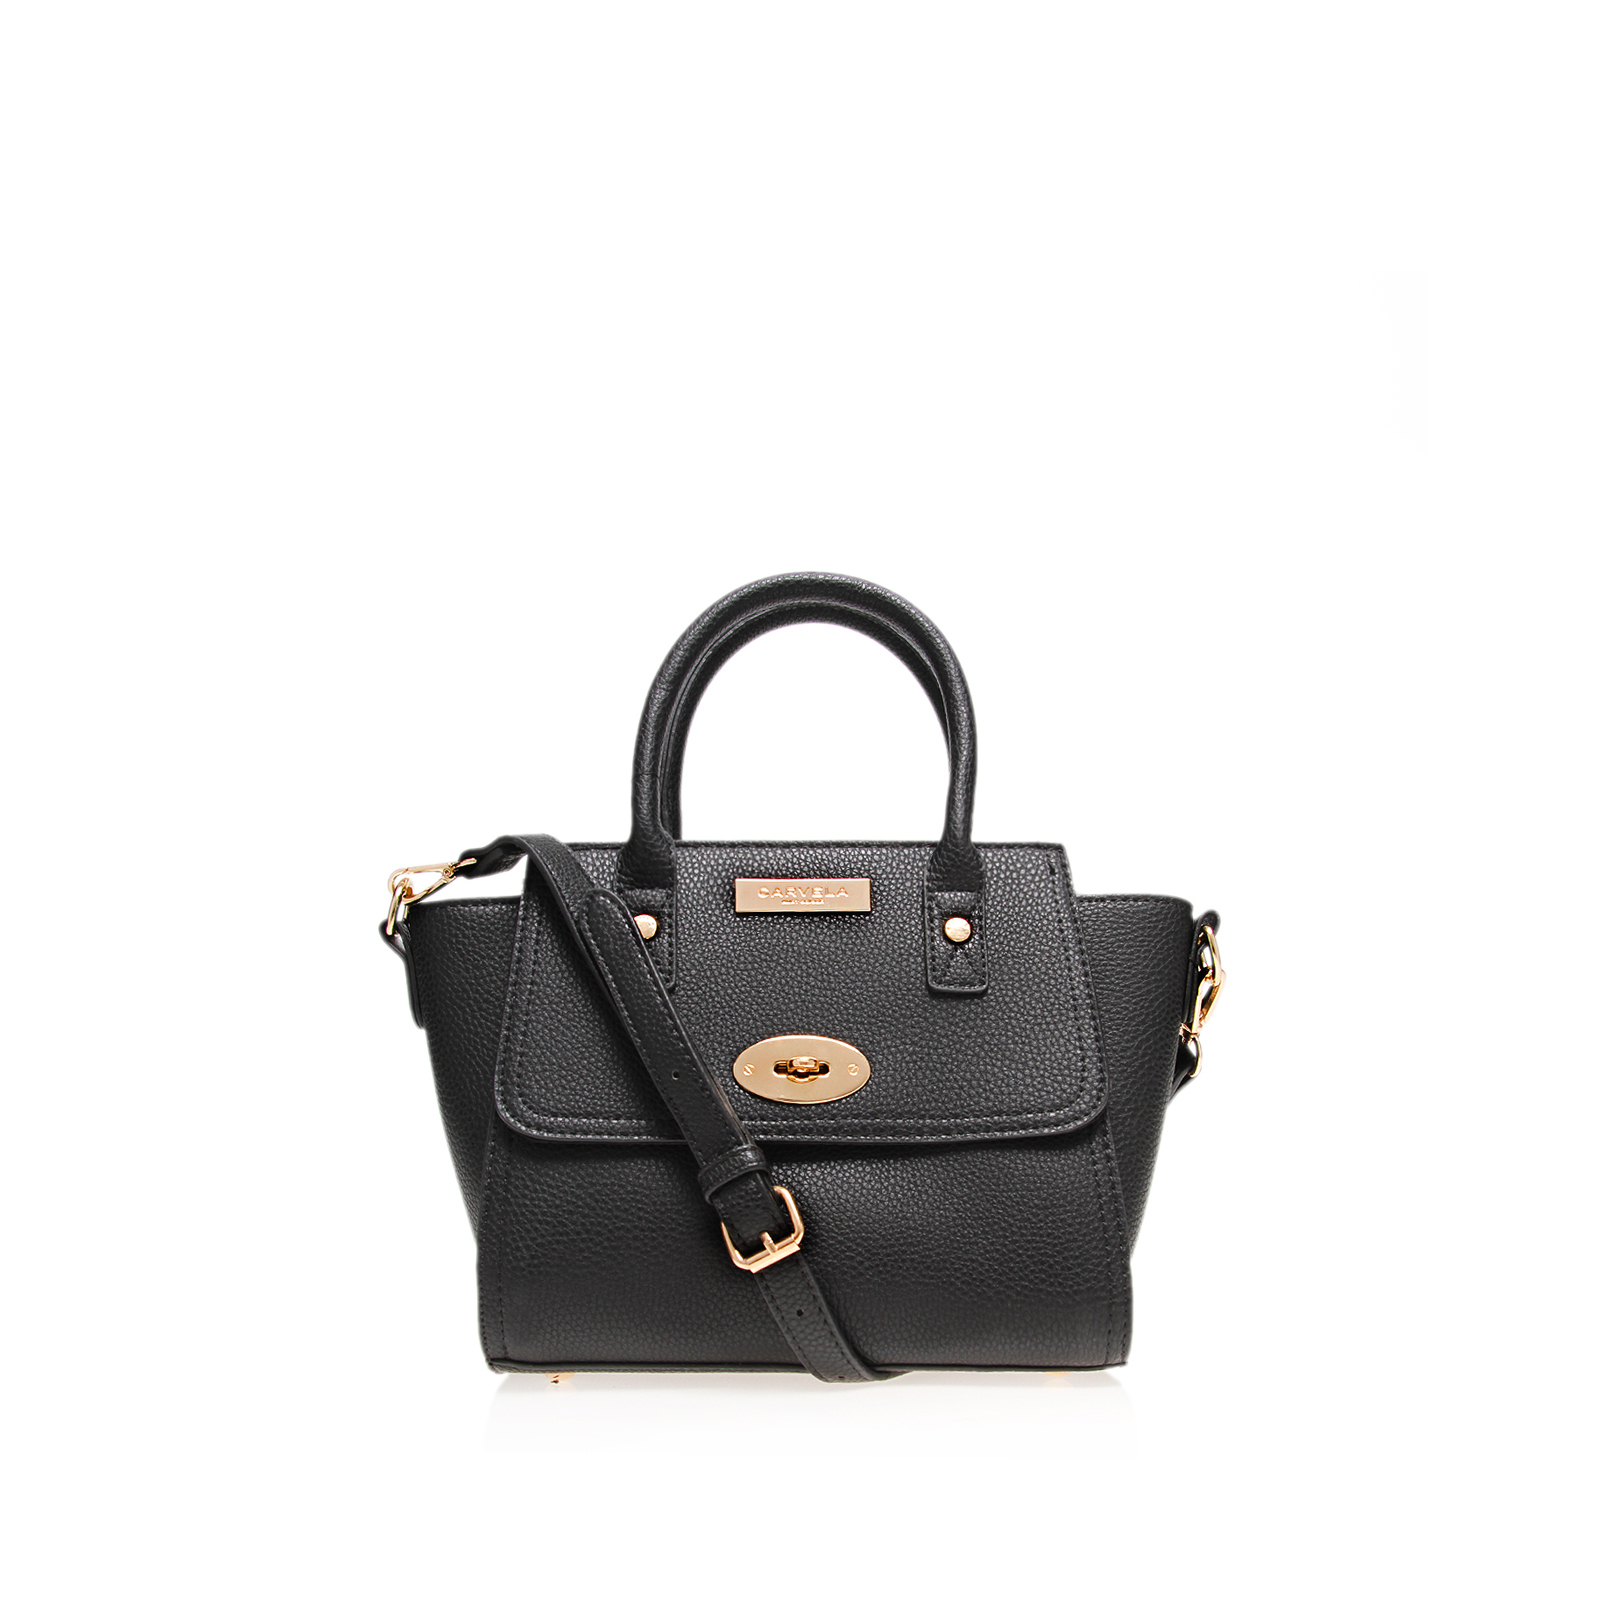 ANNELISE LOCK BAG